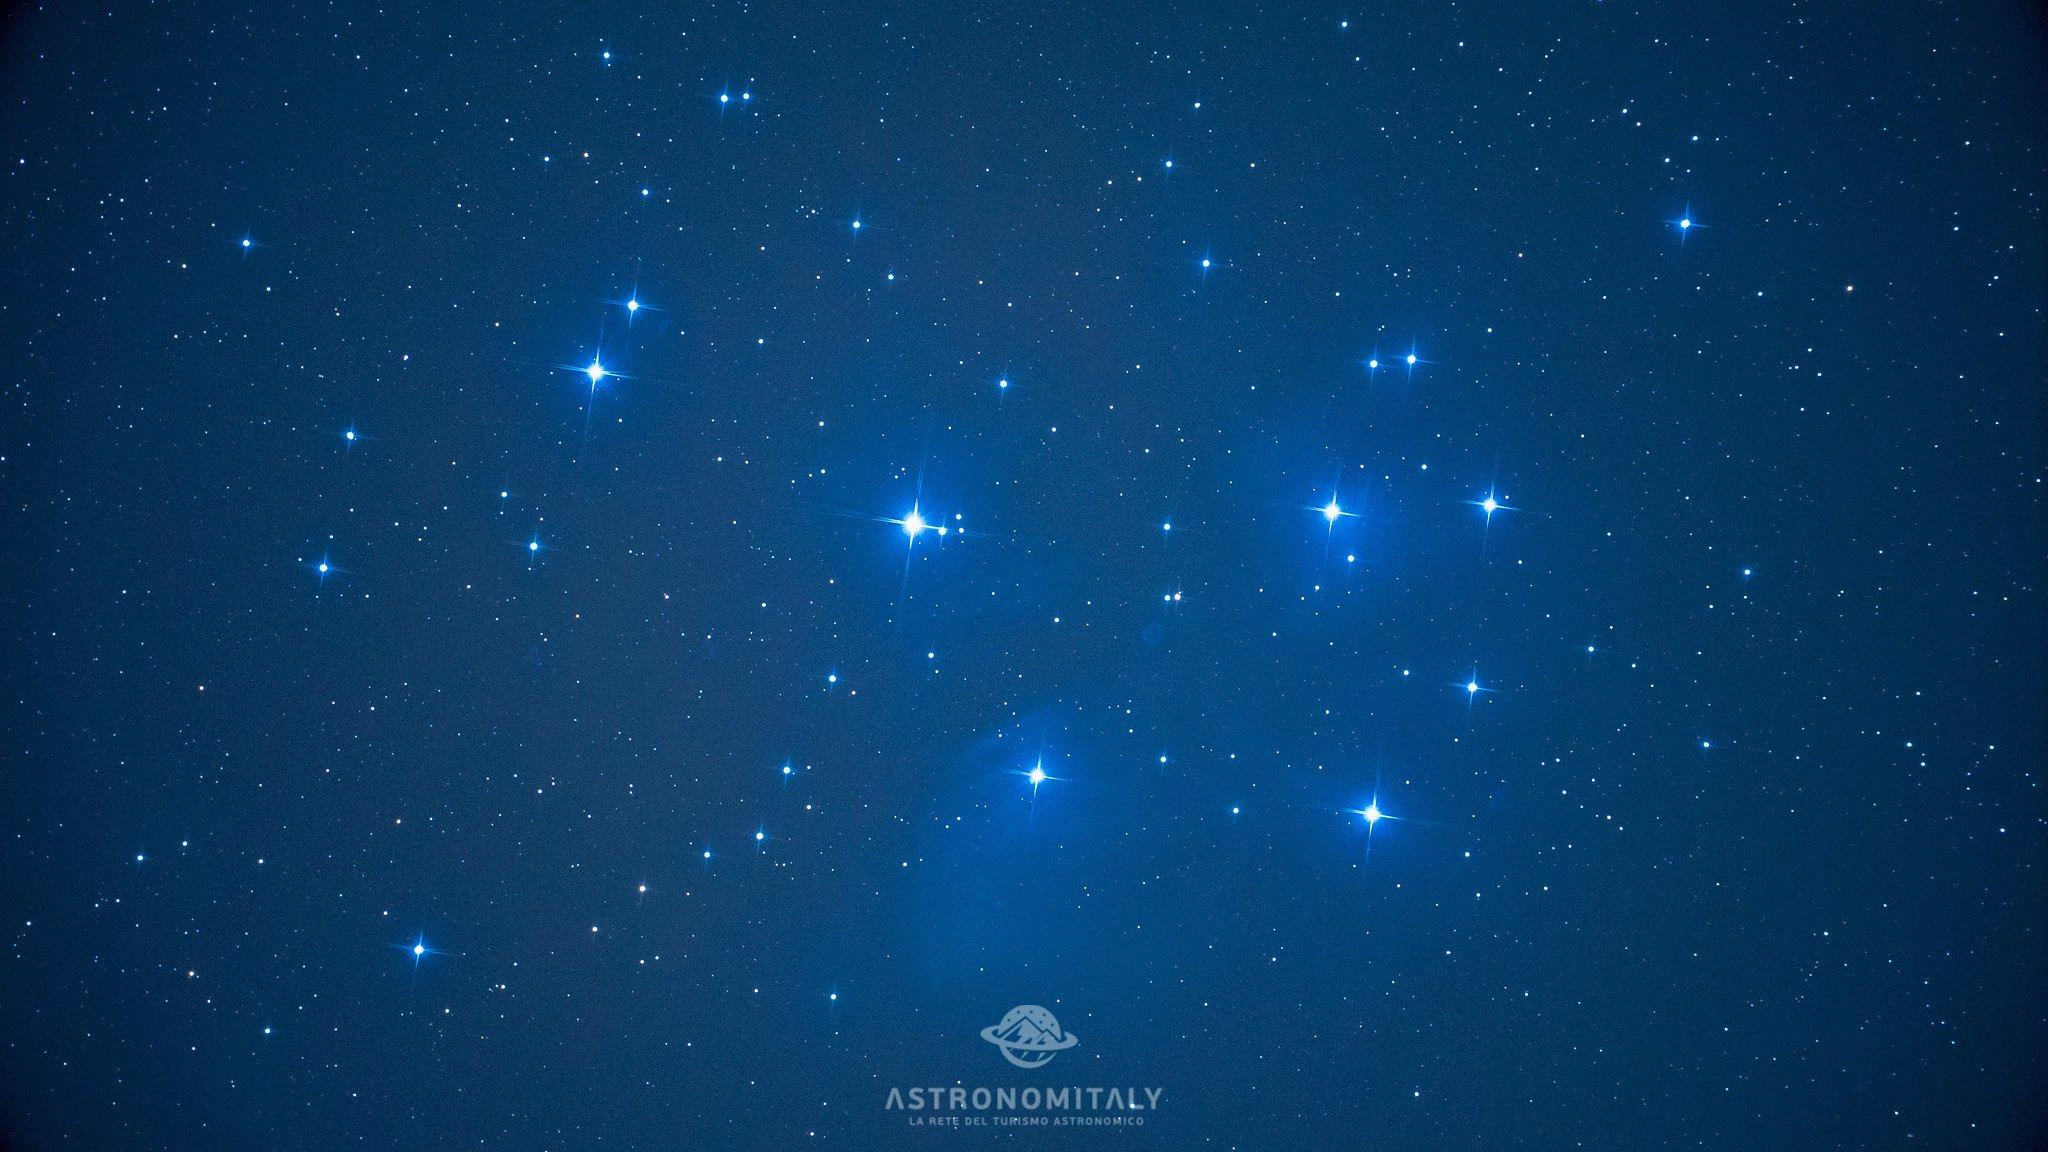 stelle astronomitaly